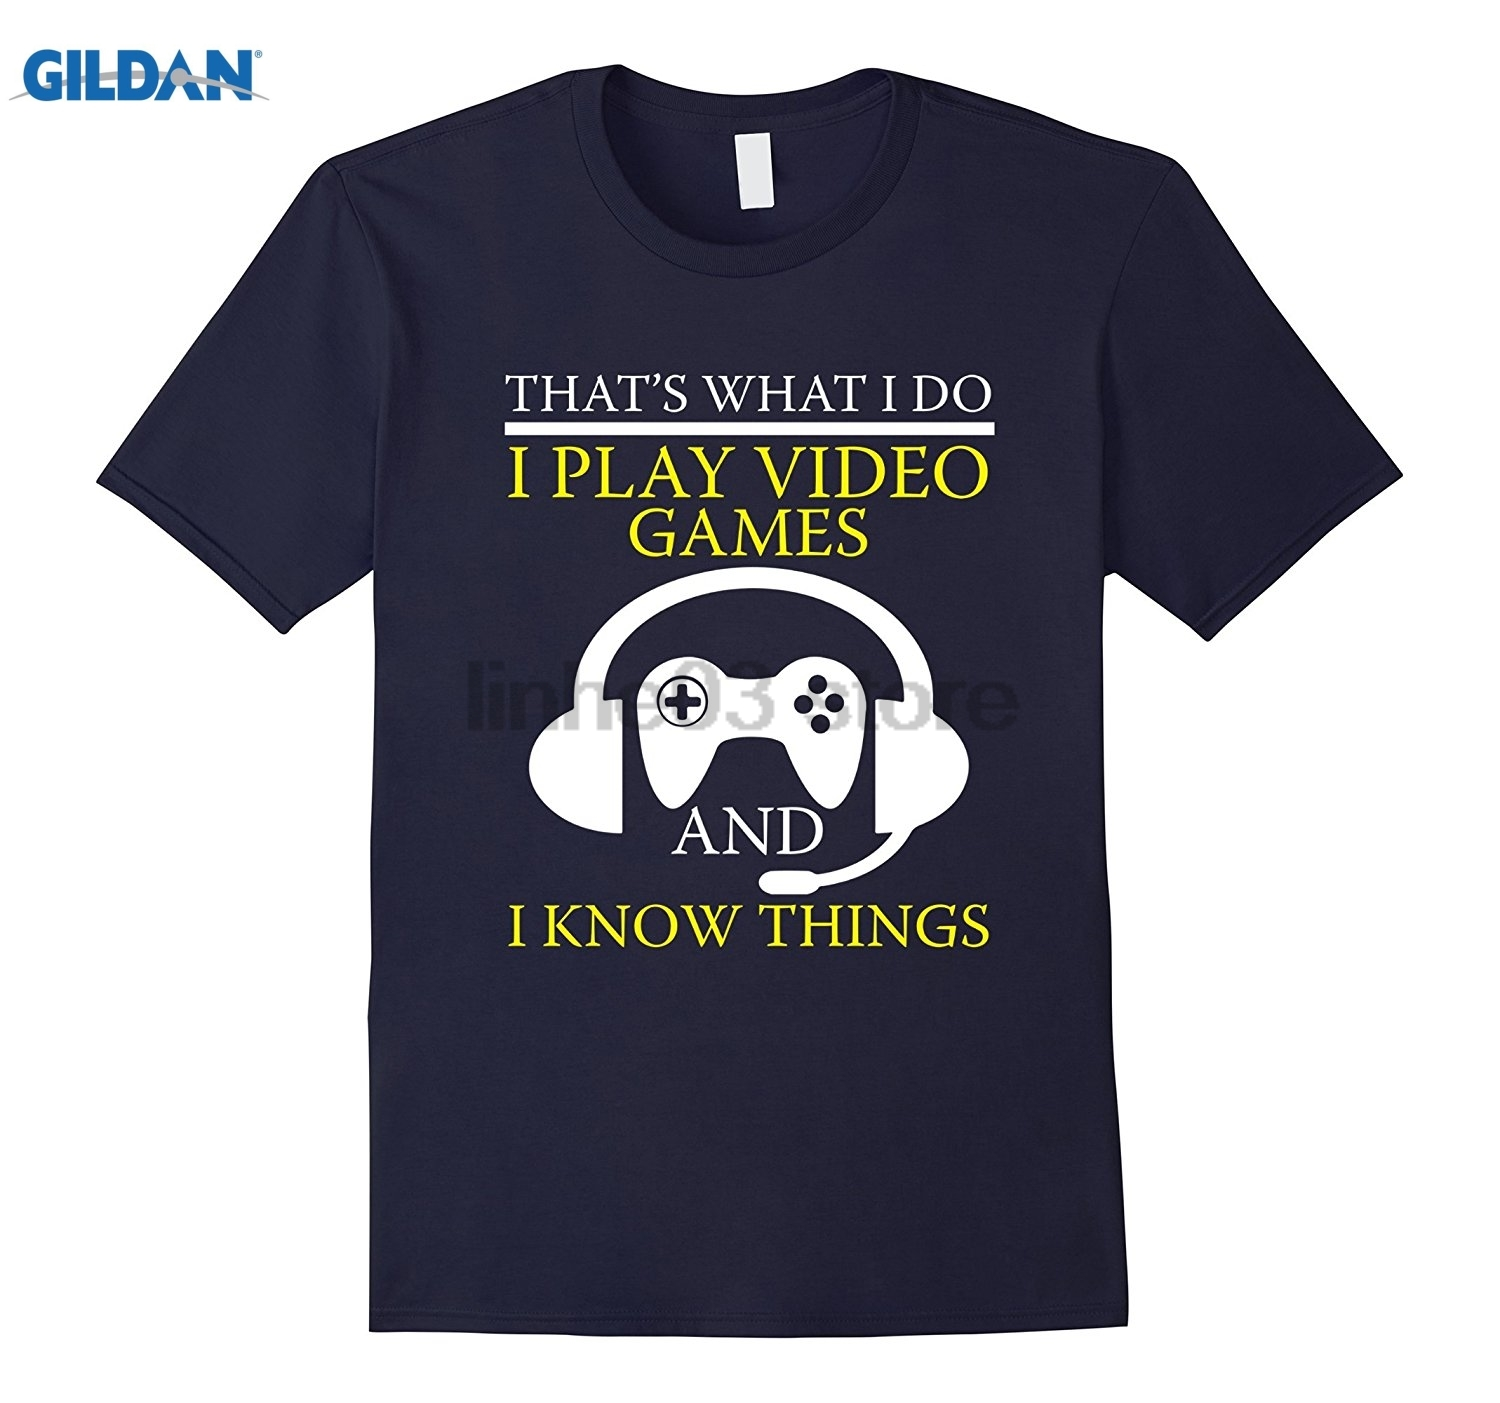 GILDAN FUNNY PLAY VIDEO GAMES AND I KNOW THINGS T-SHIRT Geek Gift Hot Womens T-shirt